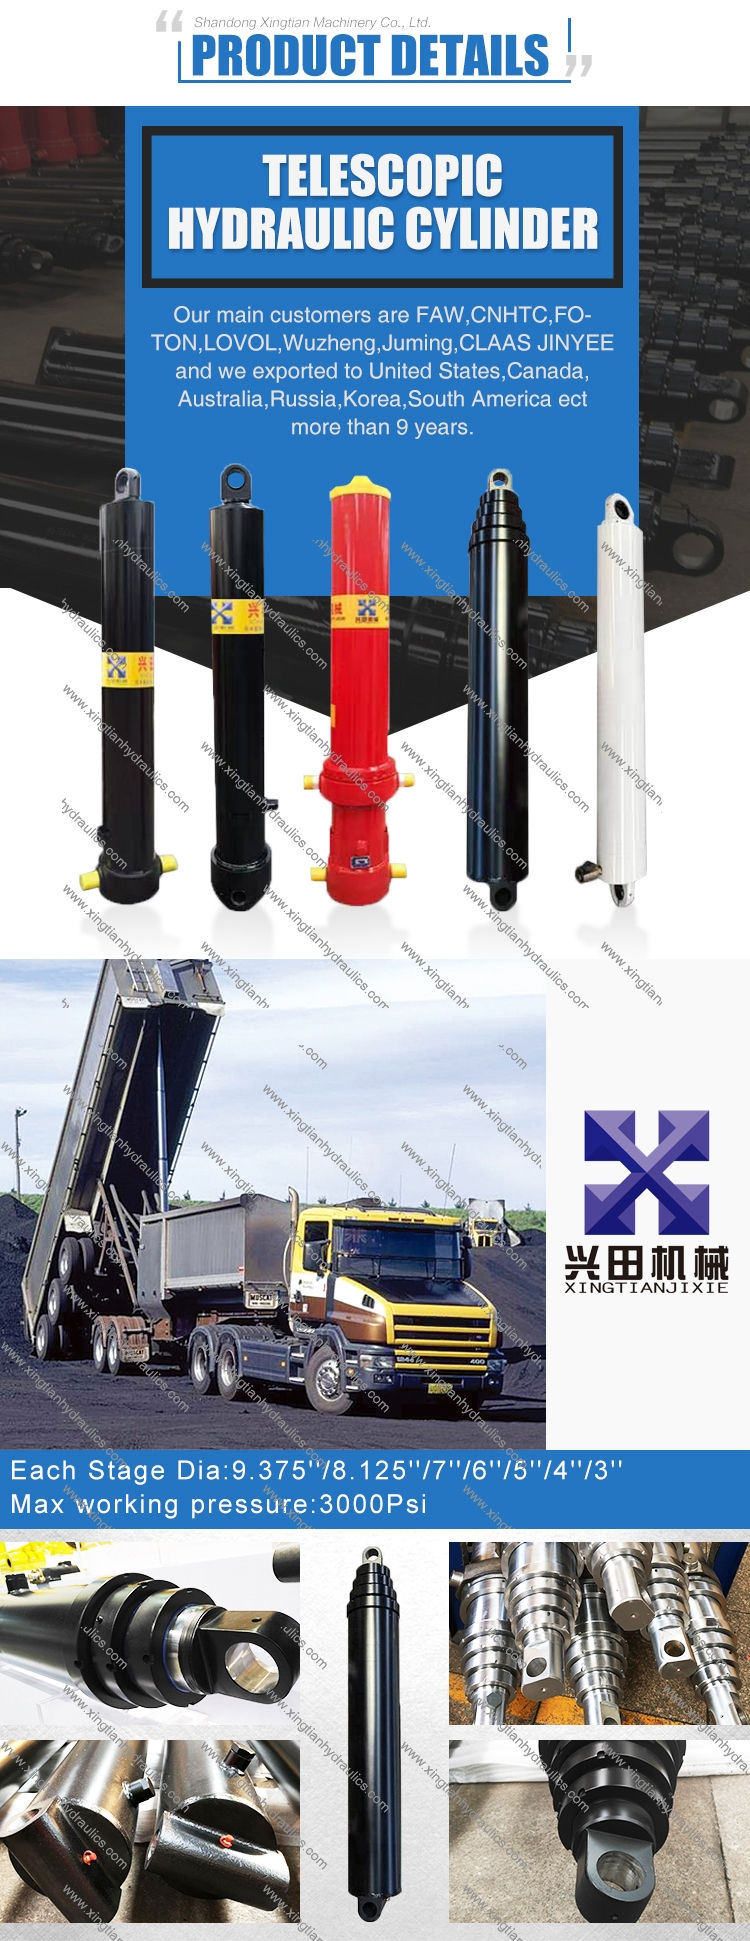 S85DC PARKER/HYVA type multi stage telescopic hydraulic cylinder for trailer,dump truck